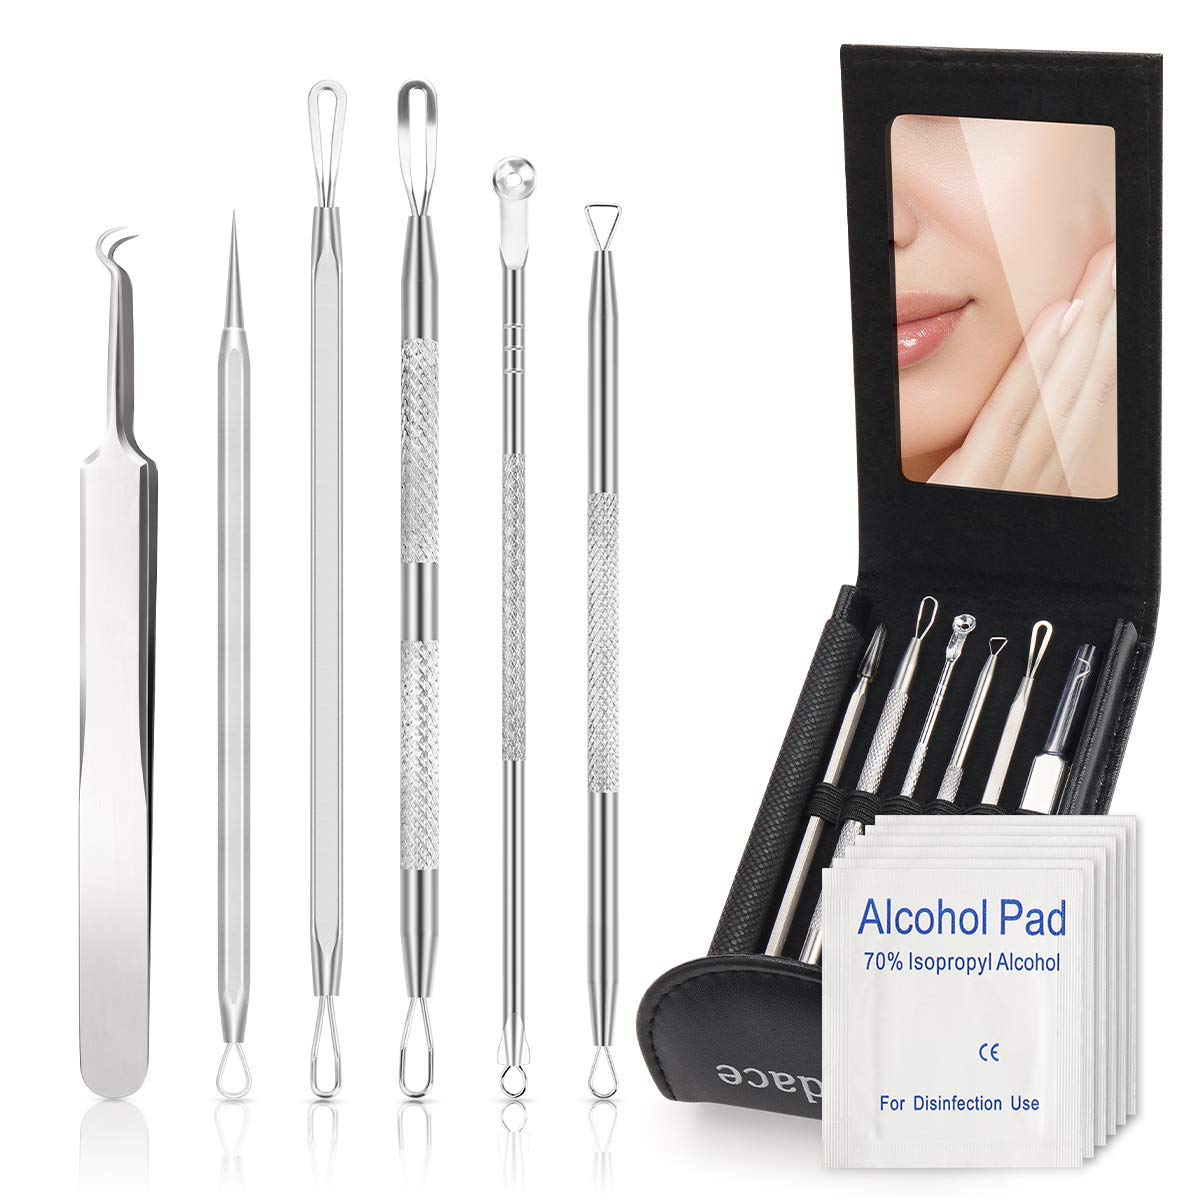 Pimple Popper Tool Kit,Blackhead Remover kit,6 PCS Ingrown Hair Removal Kit,White heads Removers,Pore Extraction Tool,Facial Skin Acne Zit Tools With A Leather Bag